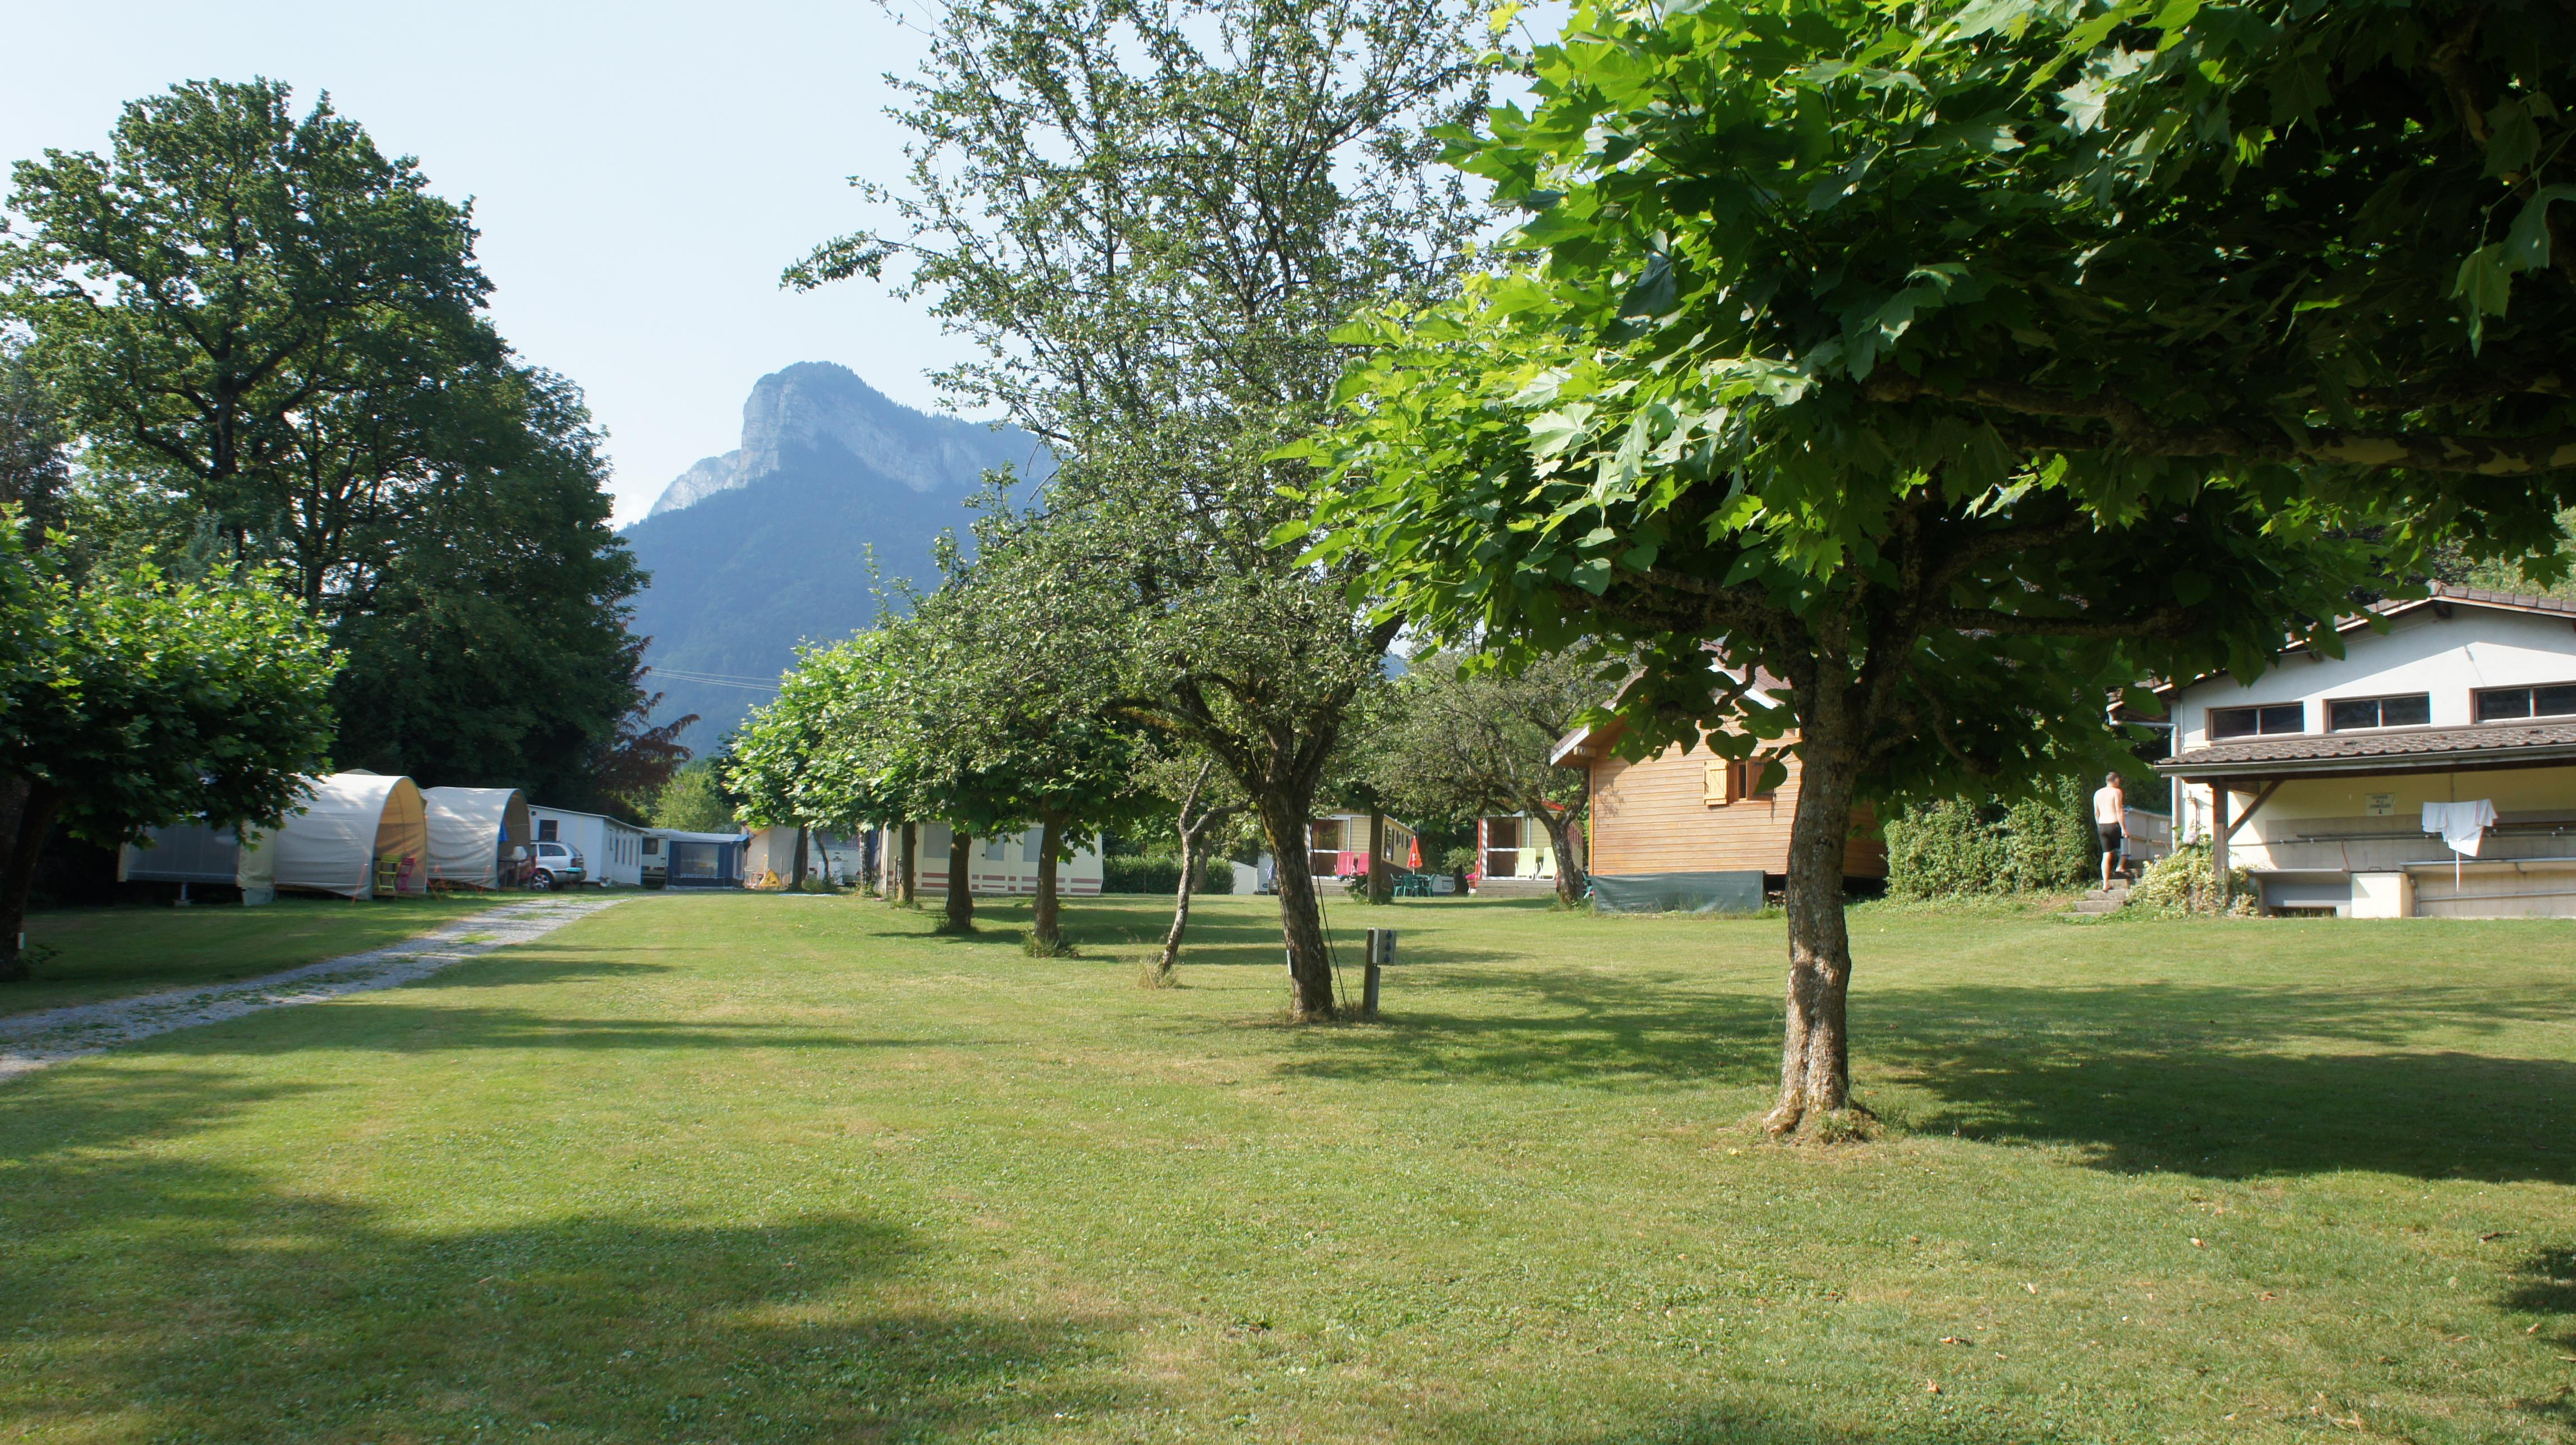 Emplacement - Emplacement - Camping Le Verger Fleuri